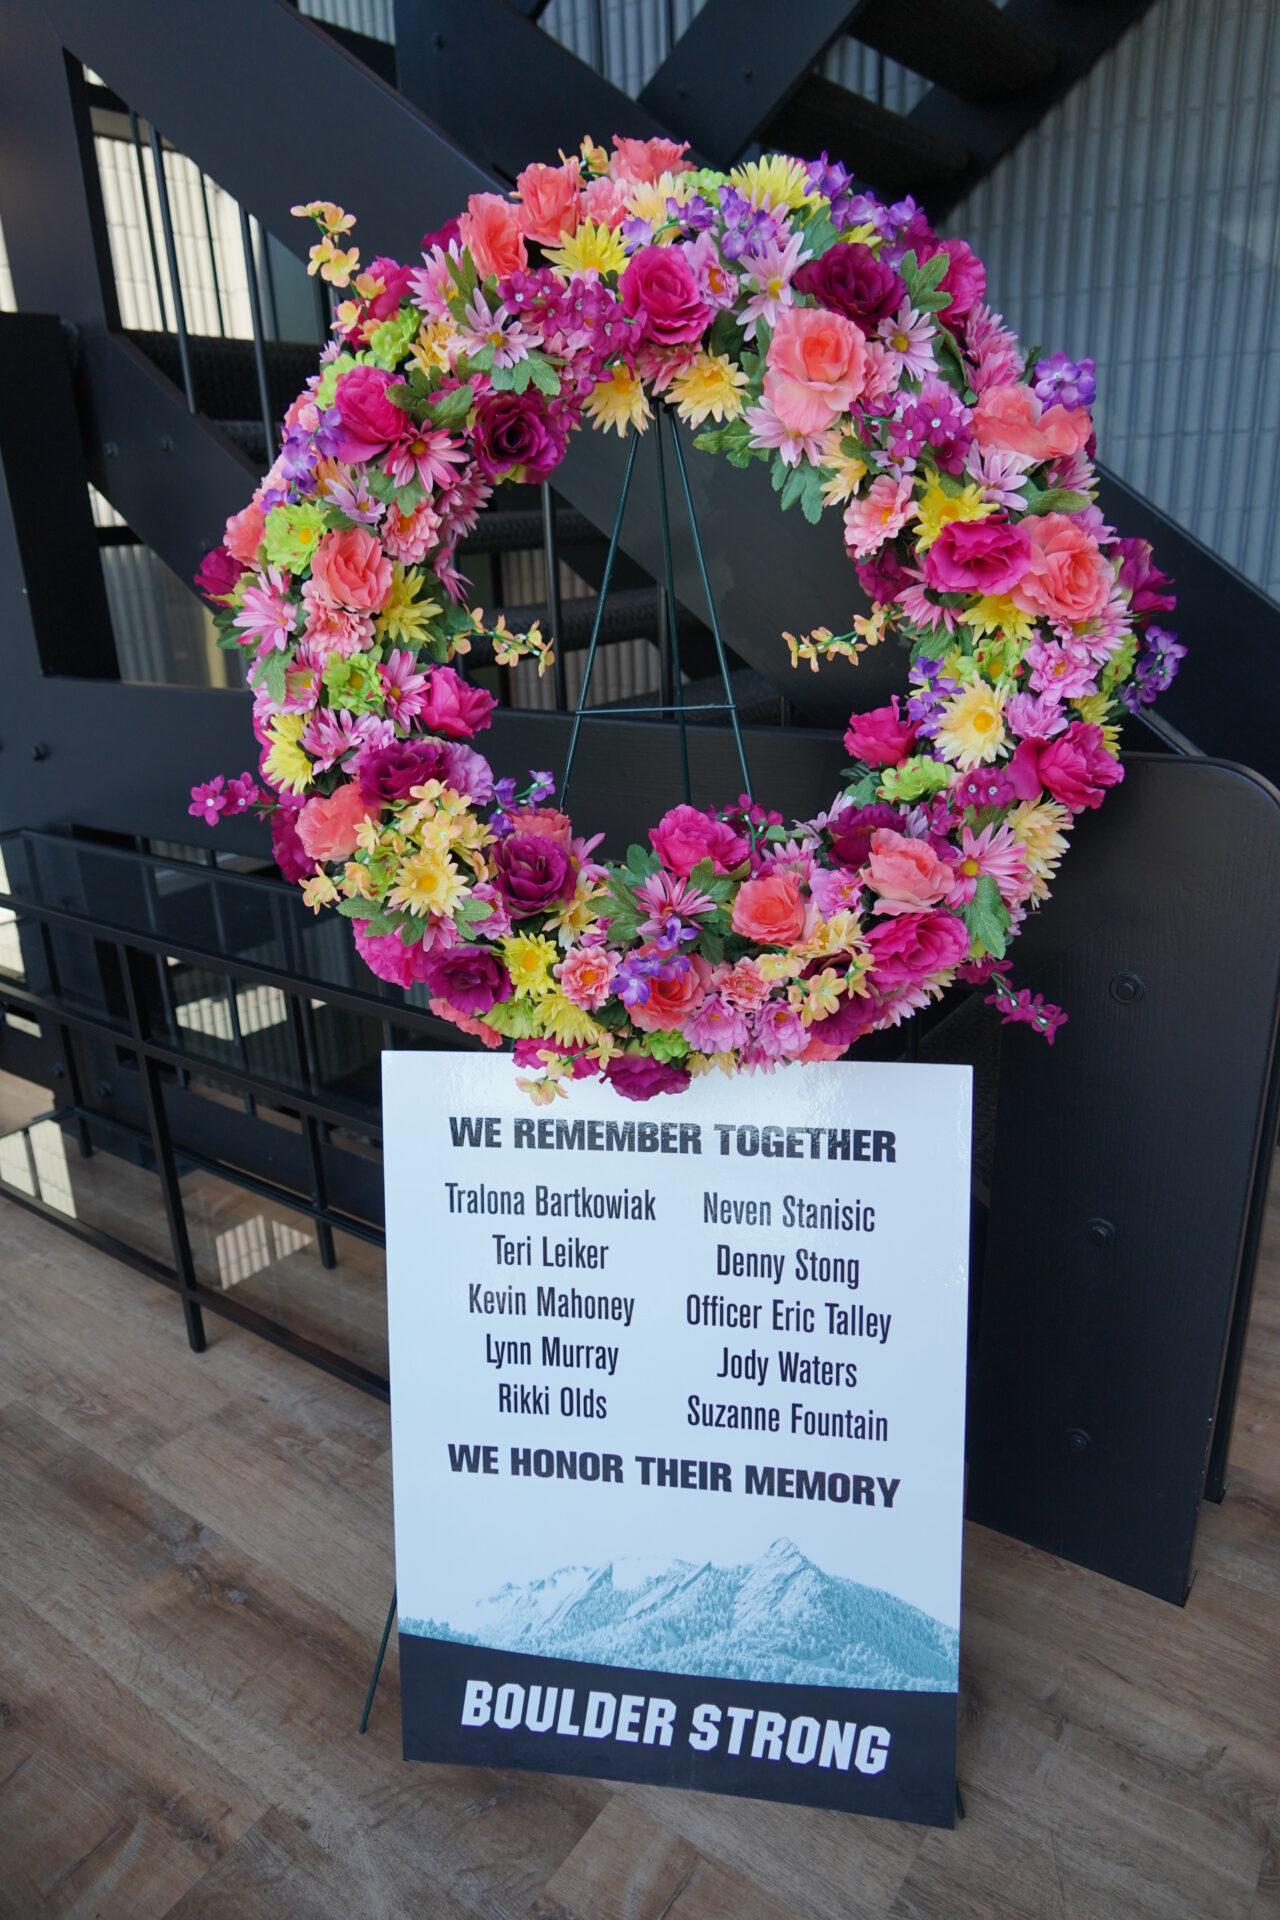 Remembering the victims of the March 22nd shooting